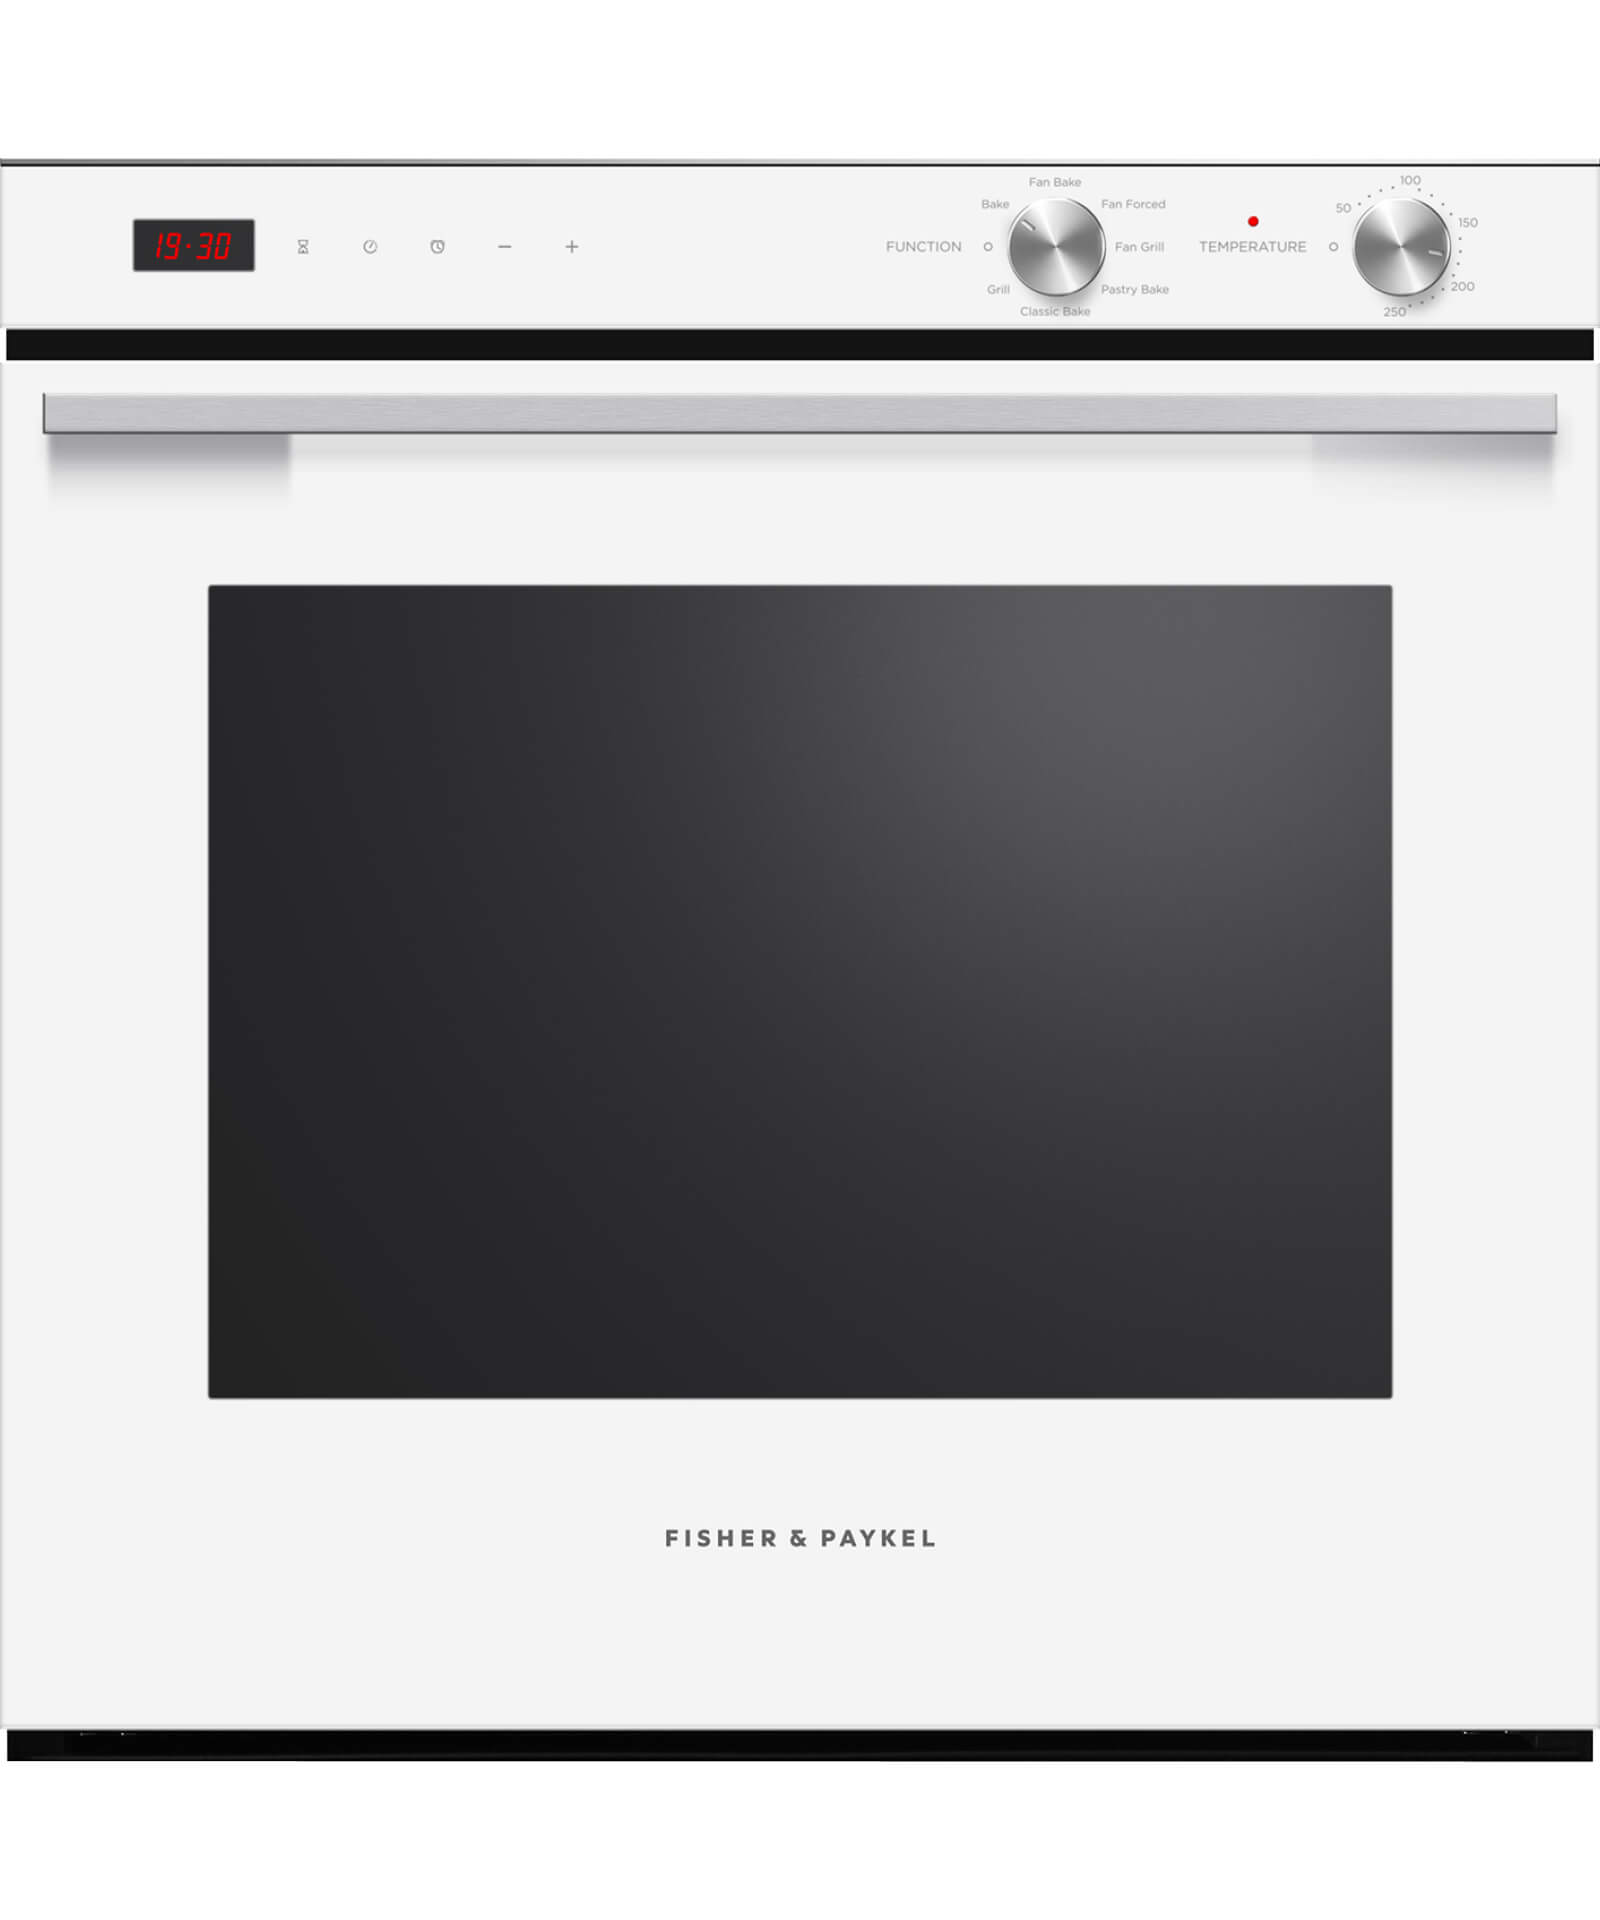 OB60SL7DEW1 - 60cm 7 Function Single Built-in Oven - 90L Gross Capacity - 81478